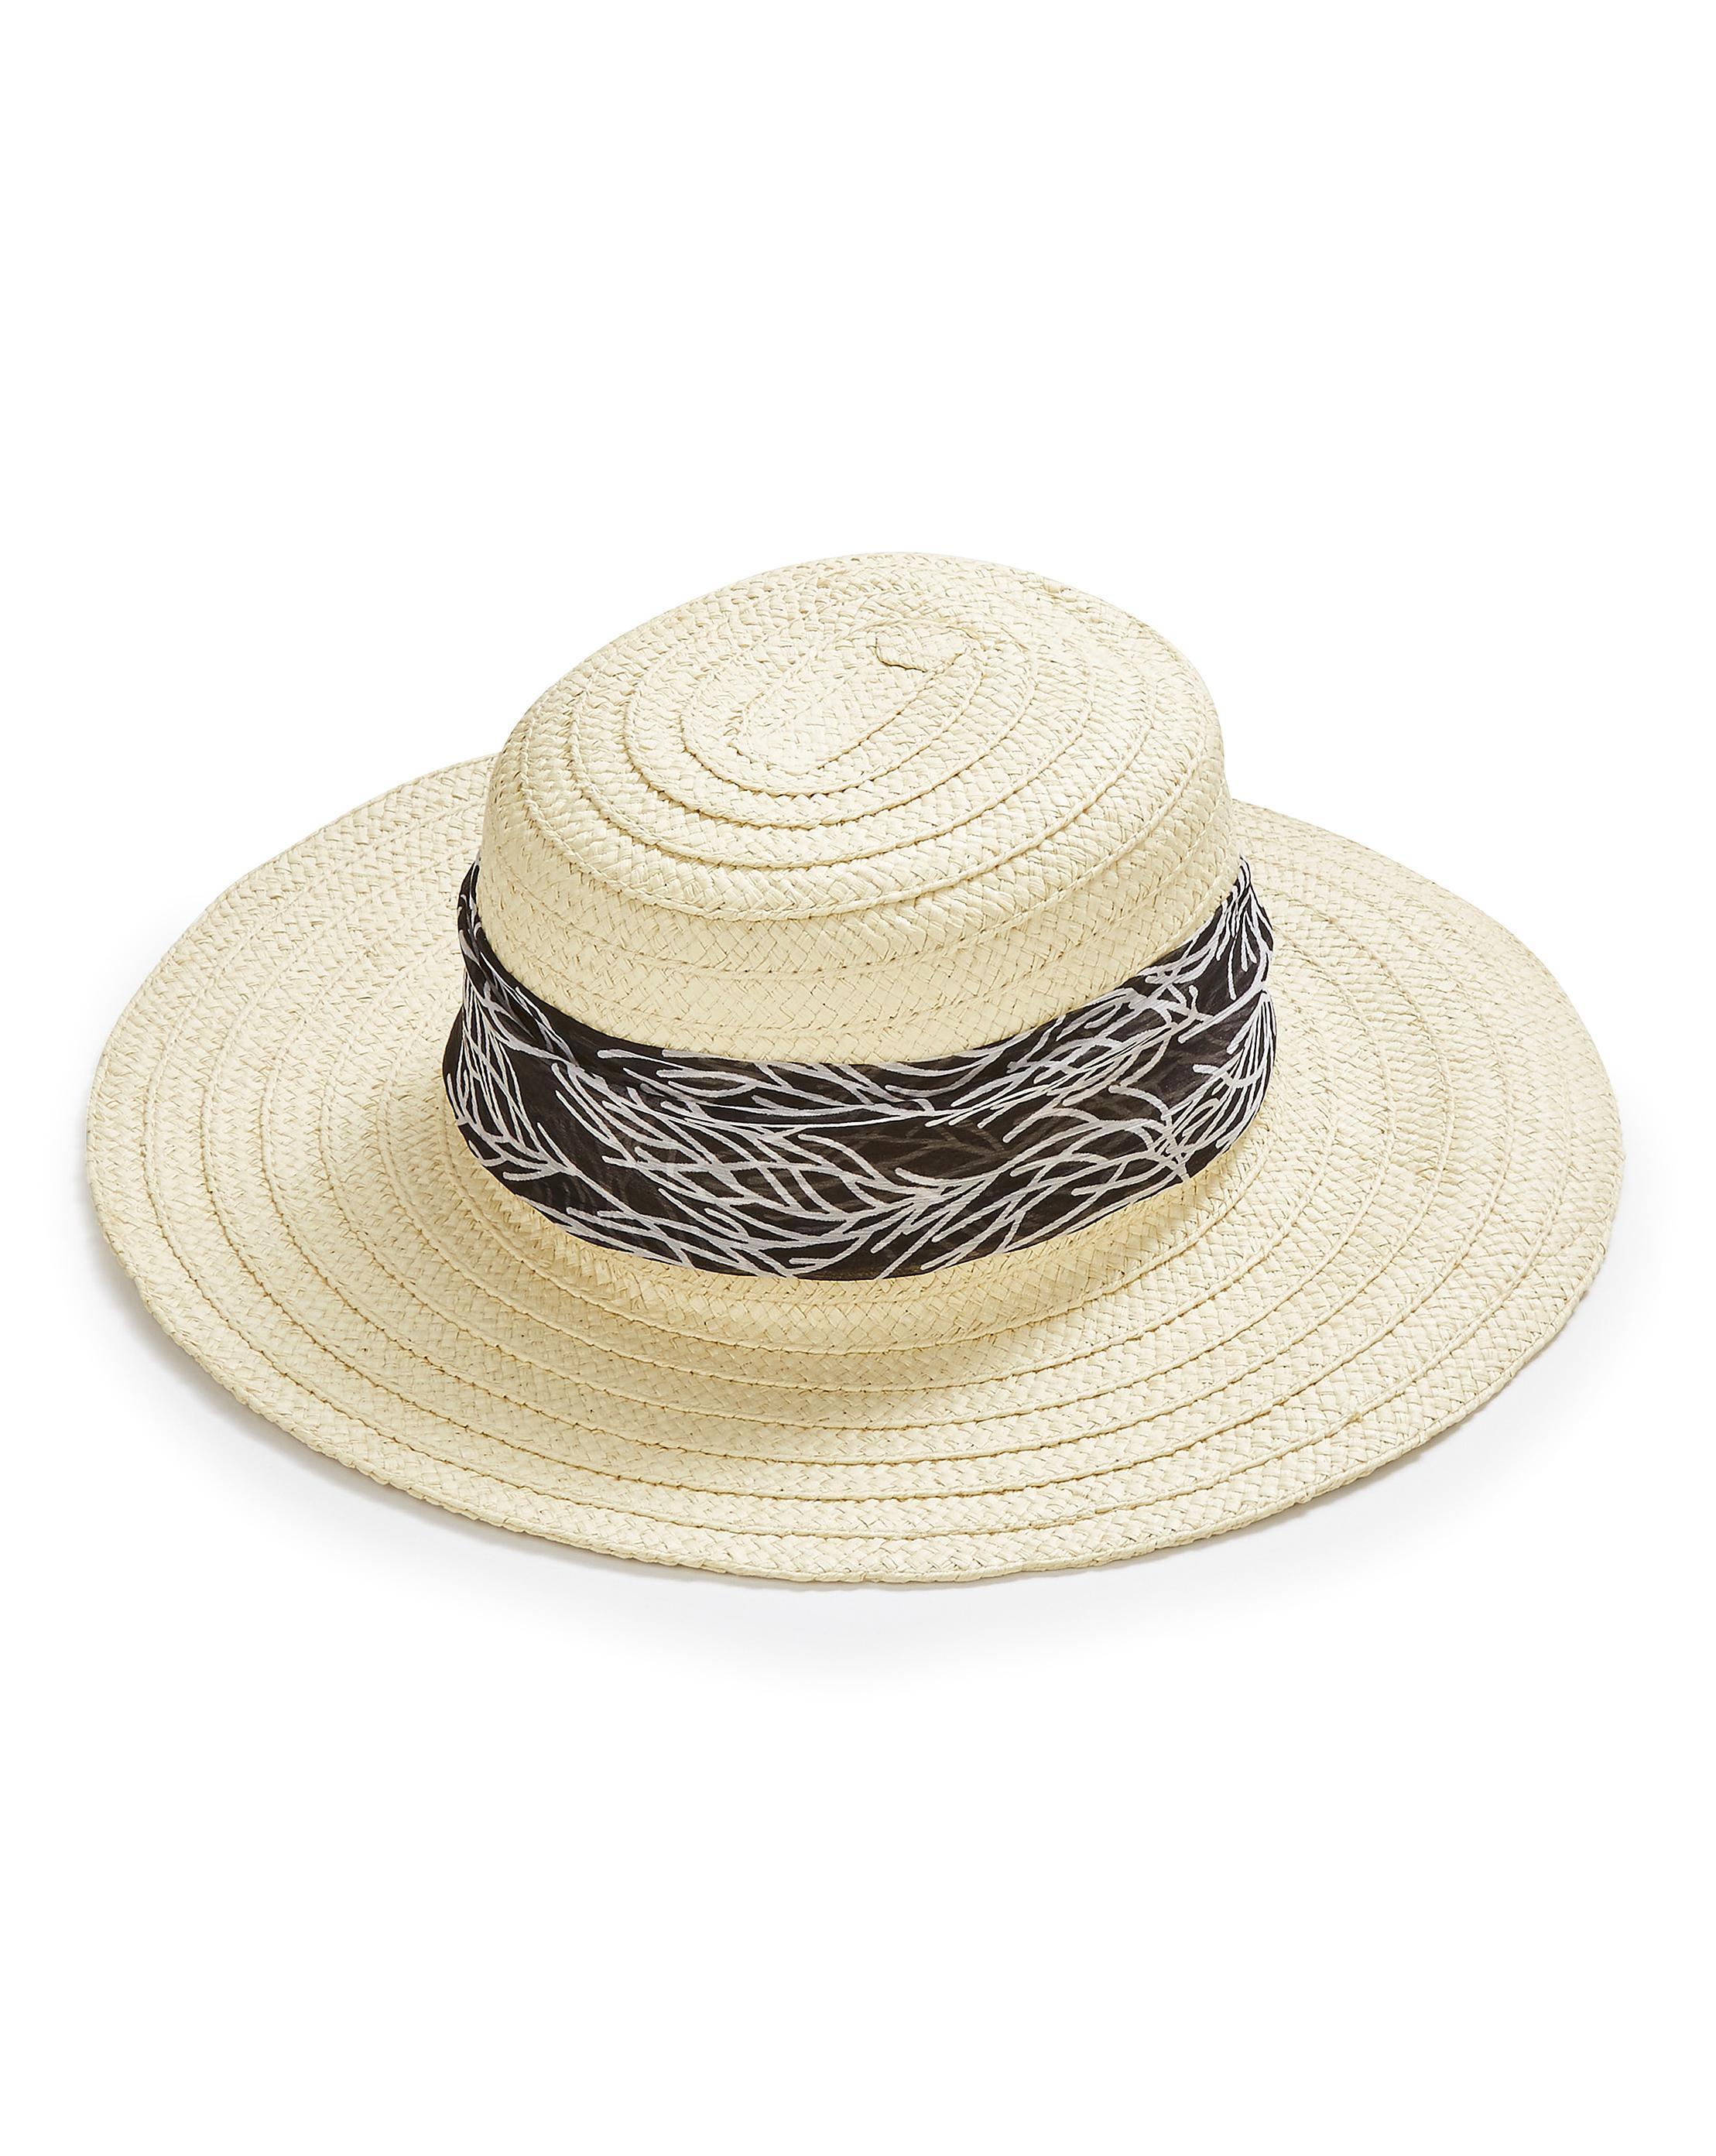 Lyst - Simply Be Scarf Tie Straw Hat in Natural ae64748487d